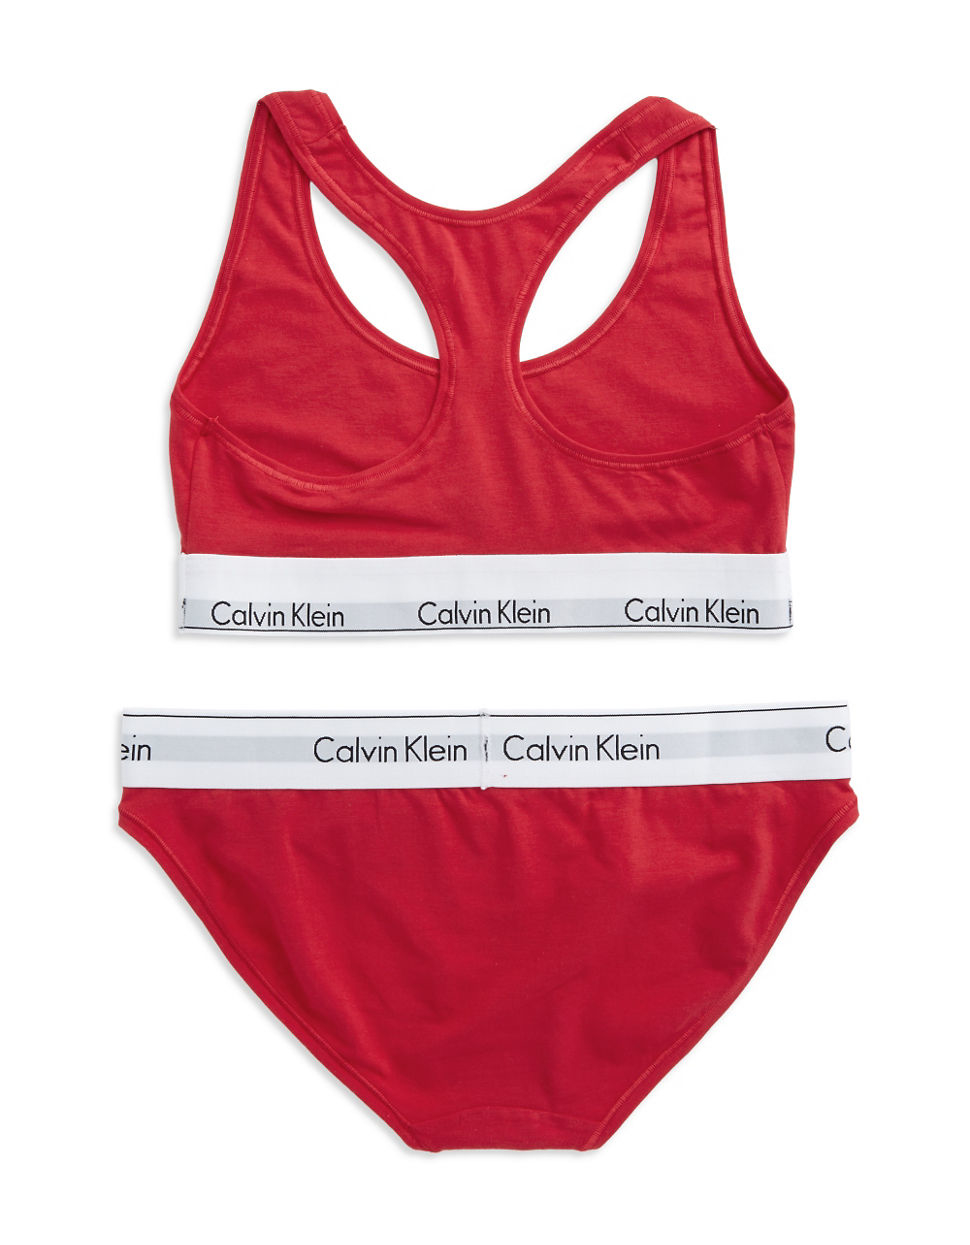 calvin klein lounge bra and bikini set in red lyst. Black Bedroom Furniture Sets. Home Design Ideas